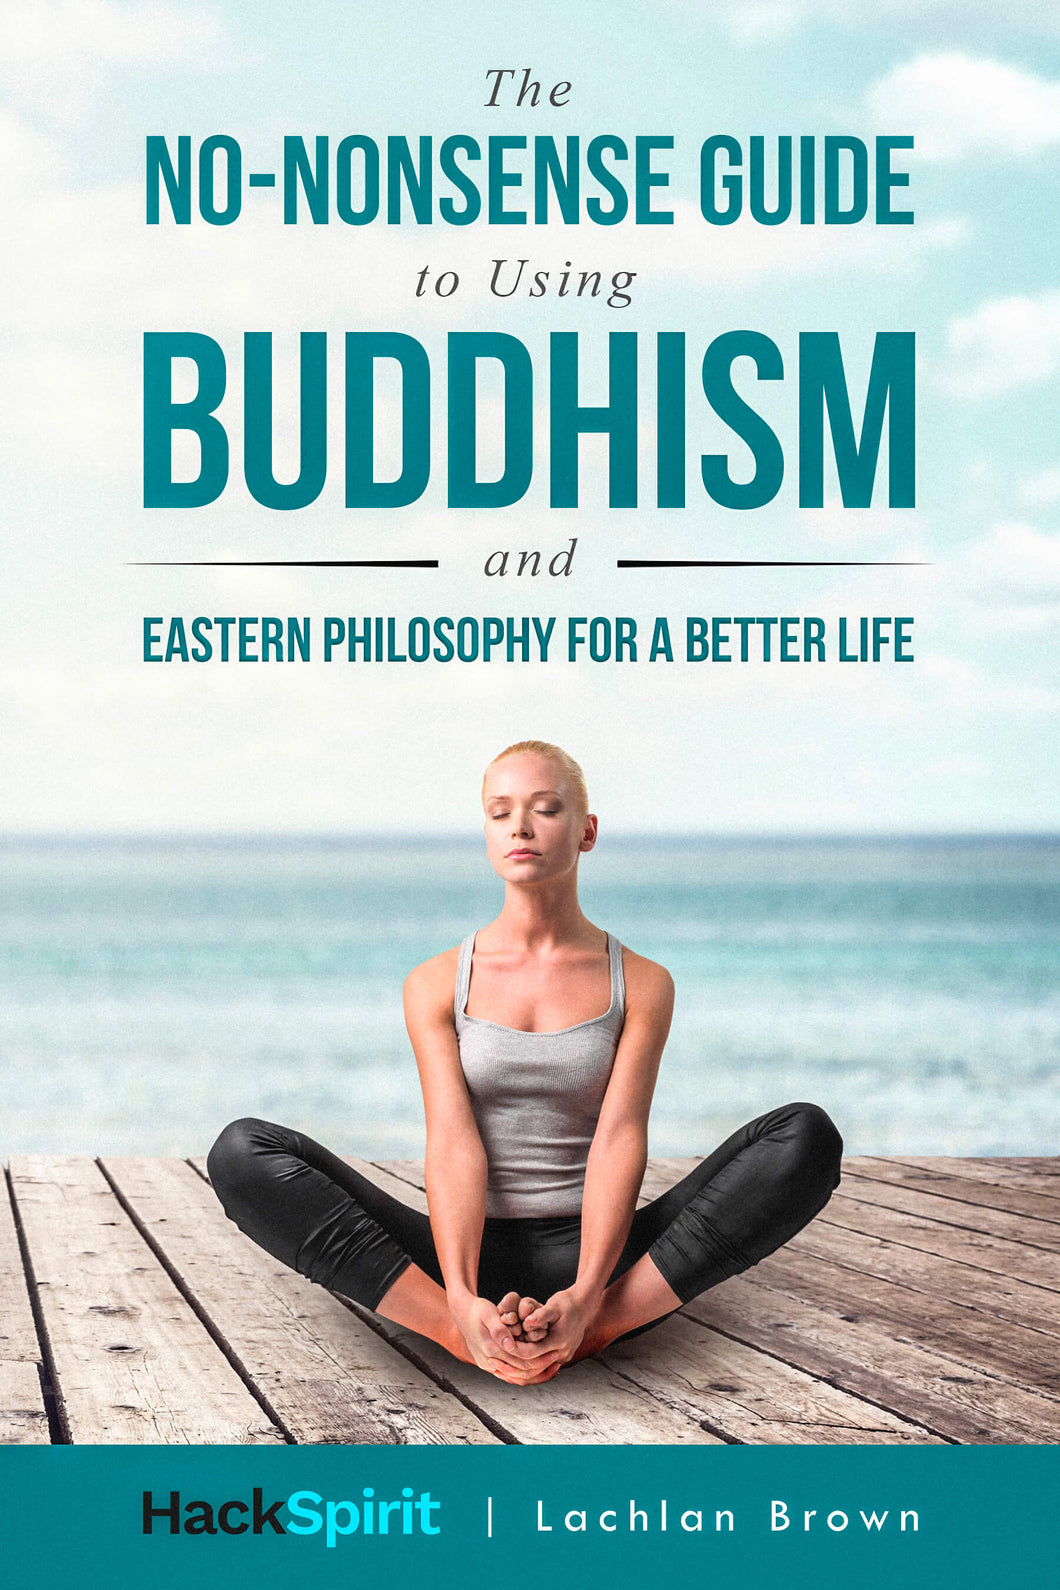 The No-Nonsense Guide to Using Buddhism and Eastern Philosophy for a Better Life